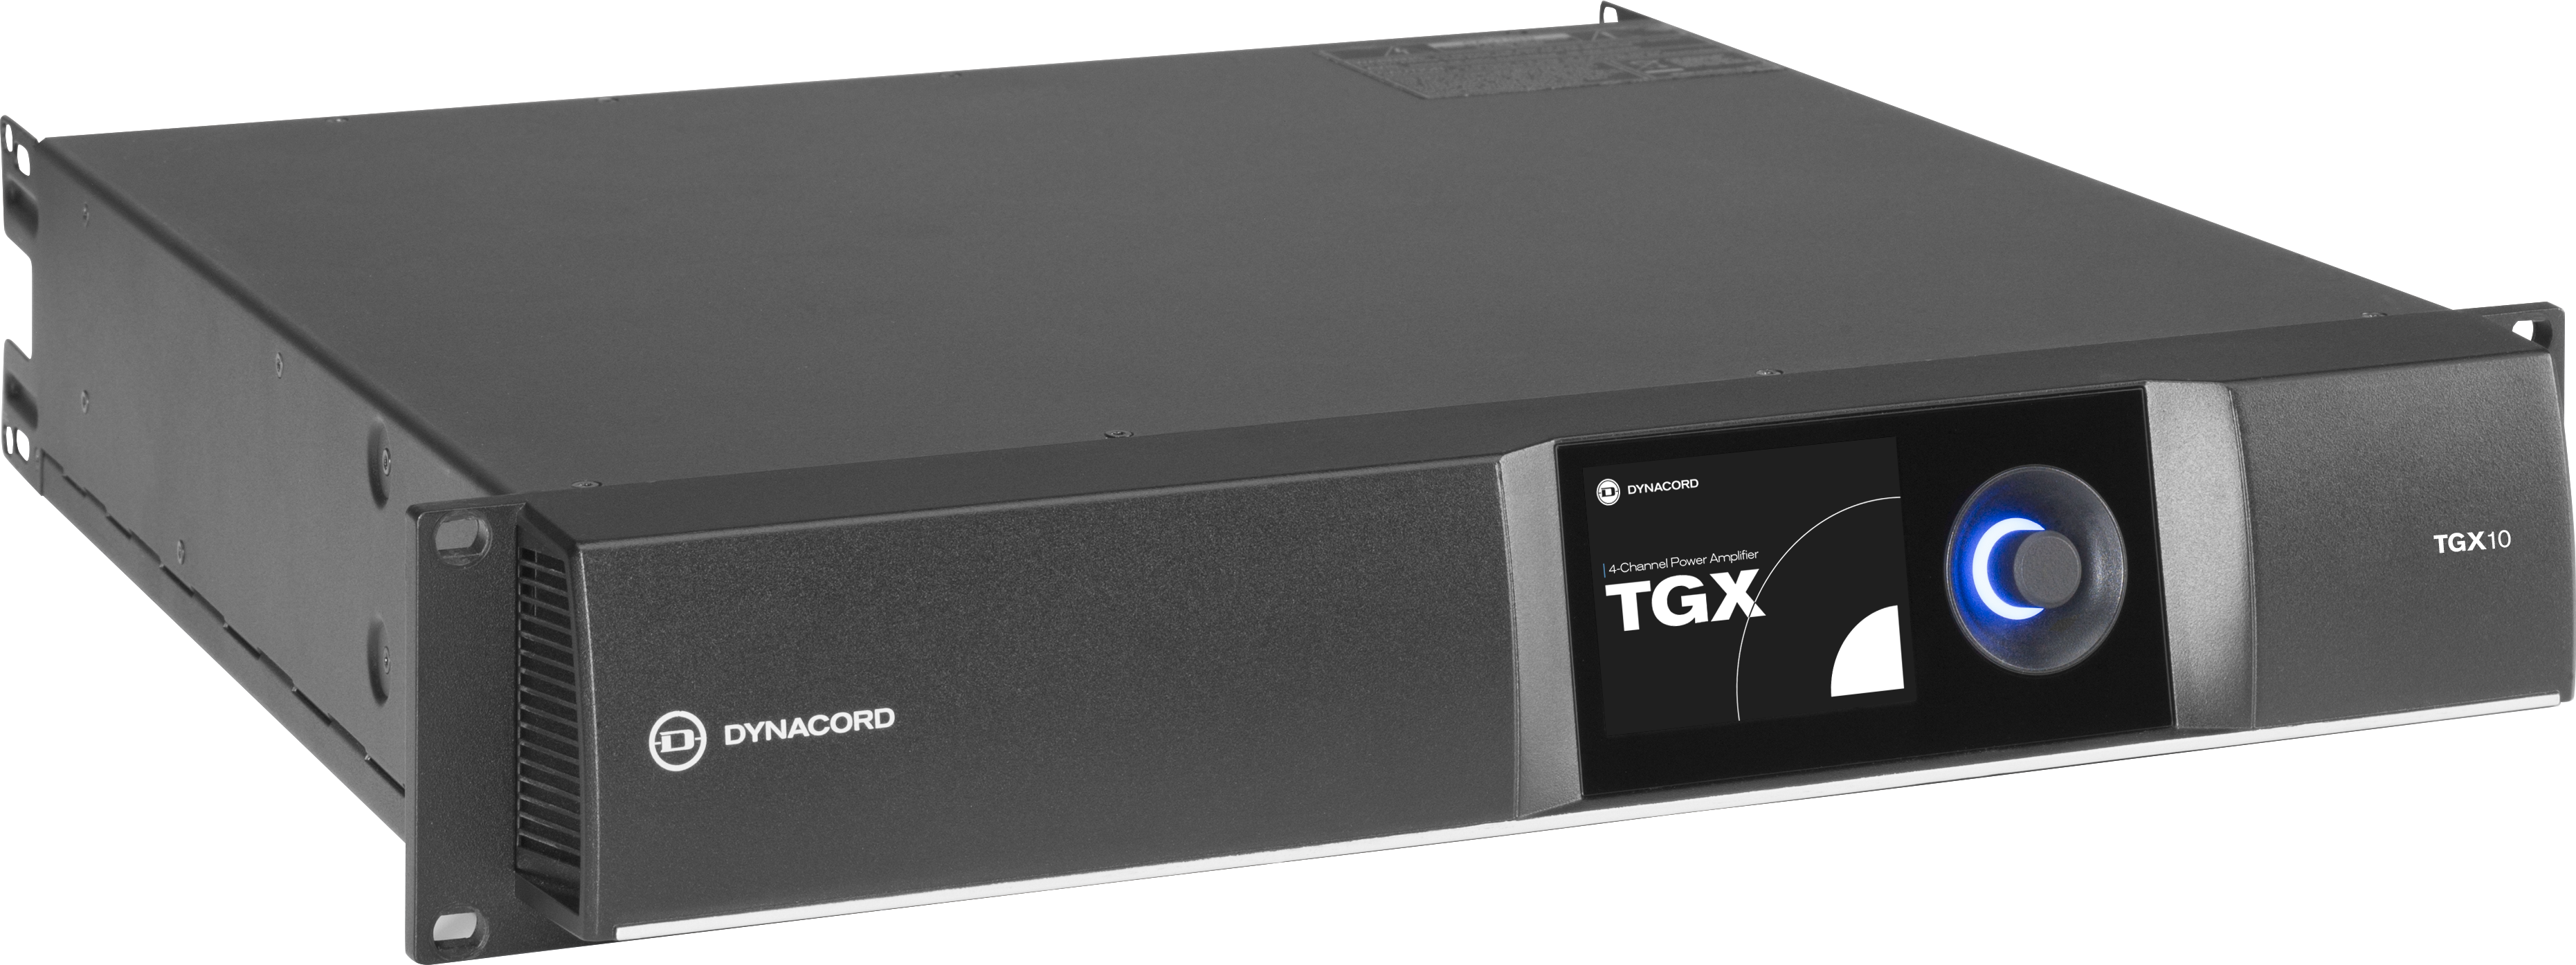 Tgx10 Dsp Power Amplifier 4 X 2500w Live By Dynacord Phase Control Previous Next